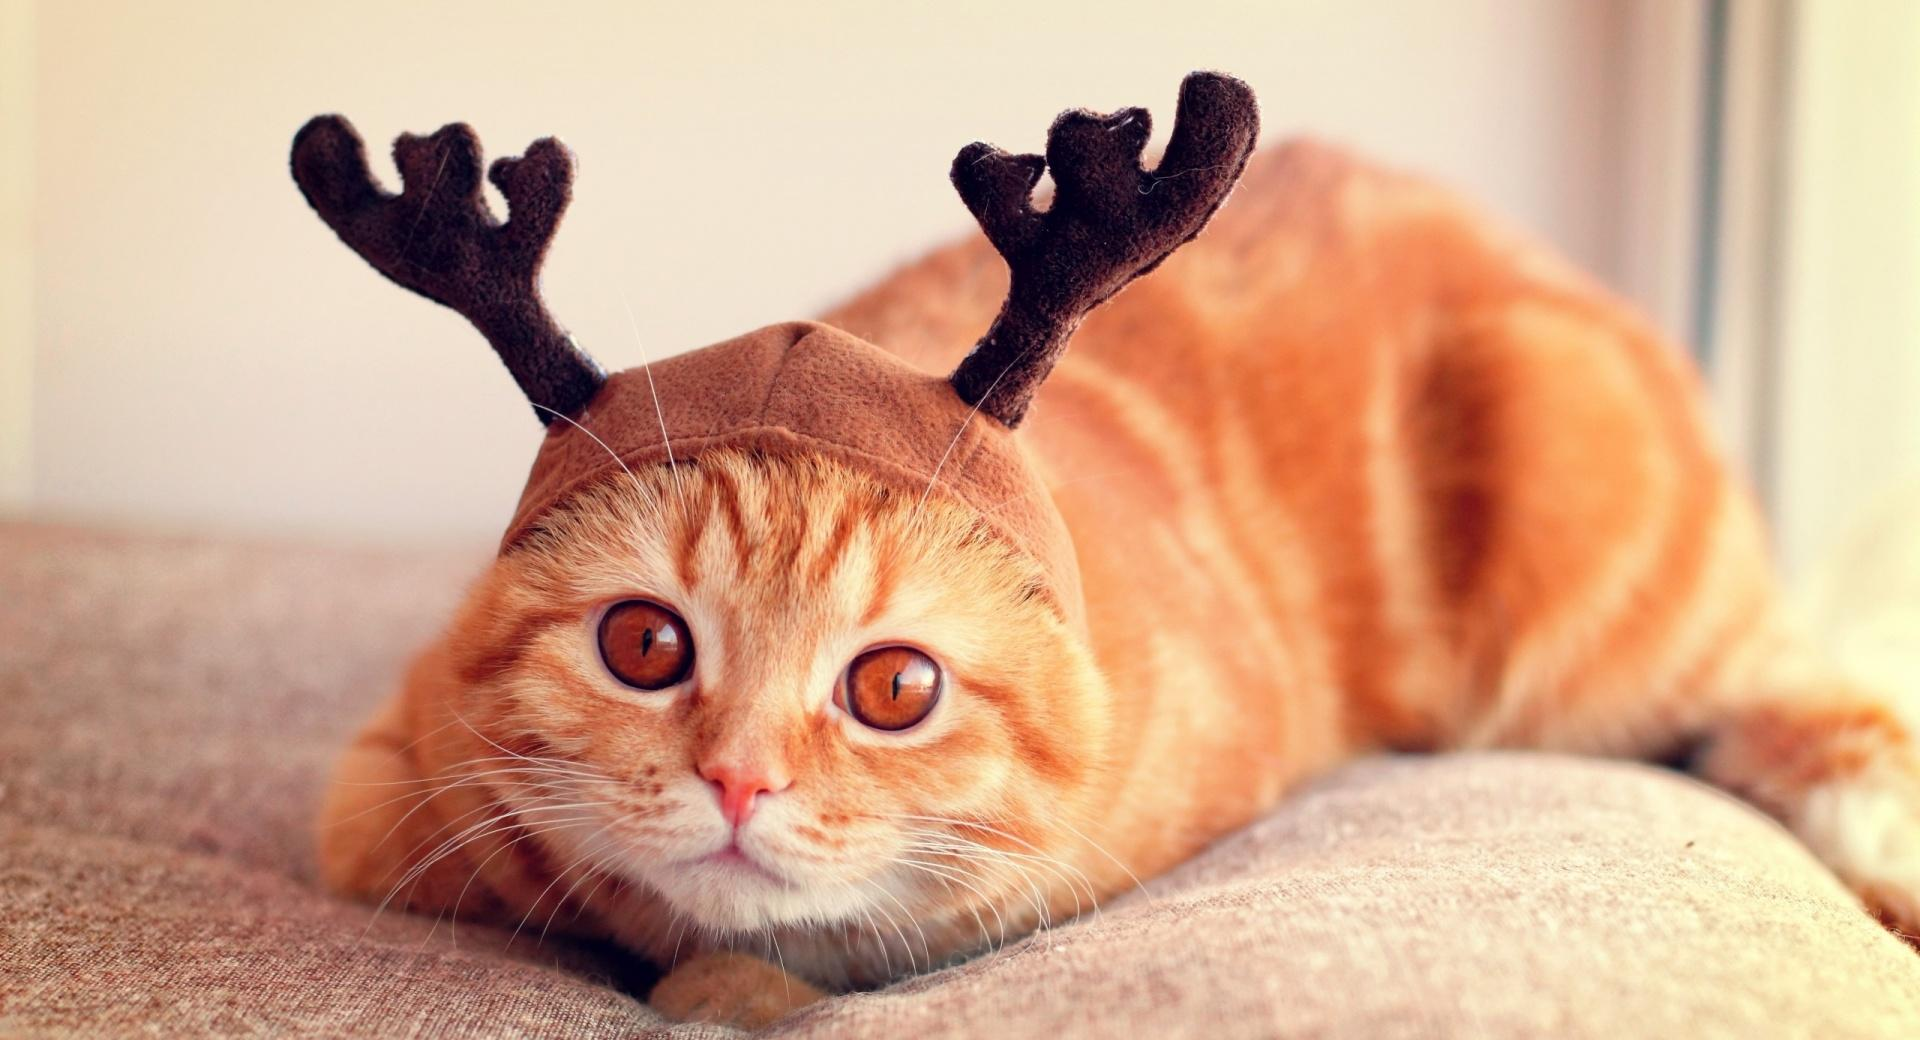 Reindeer Cat wallpapers HD quality